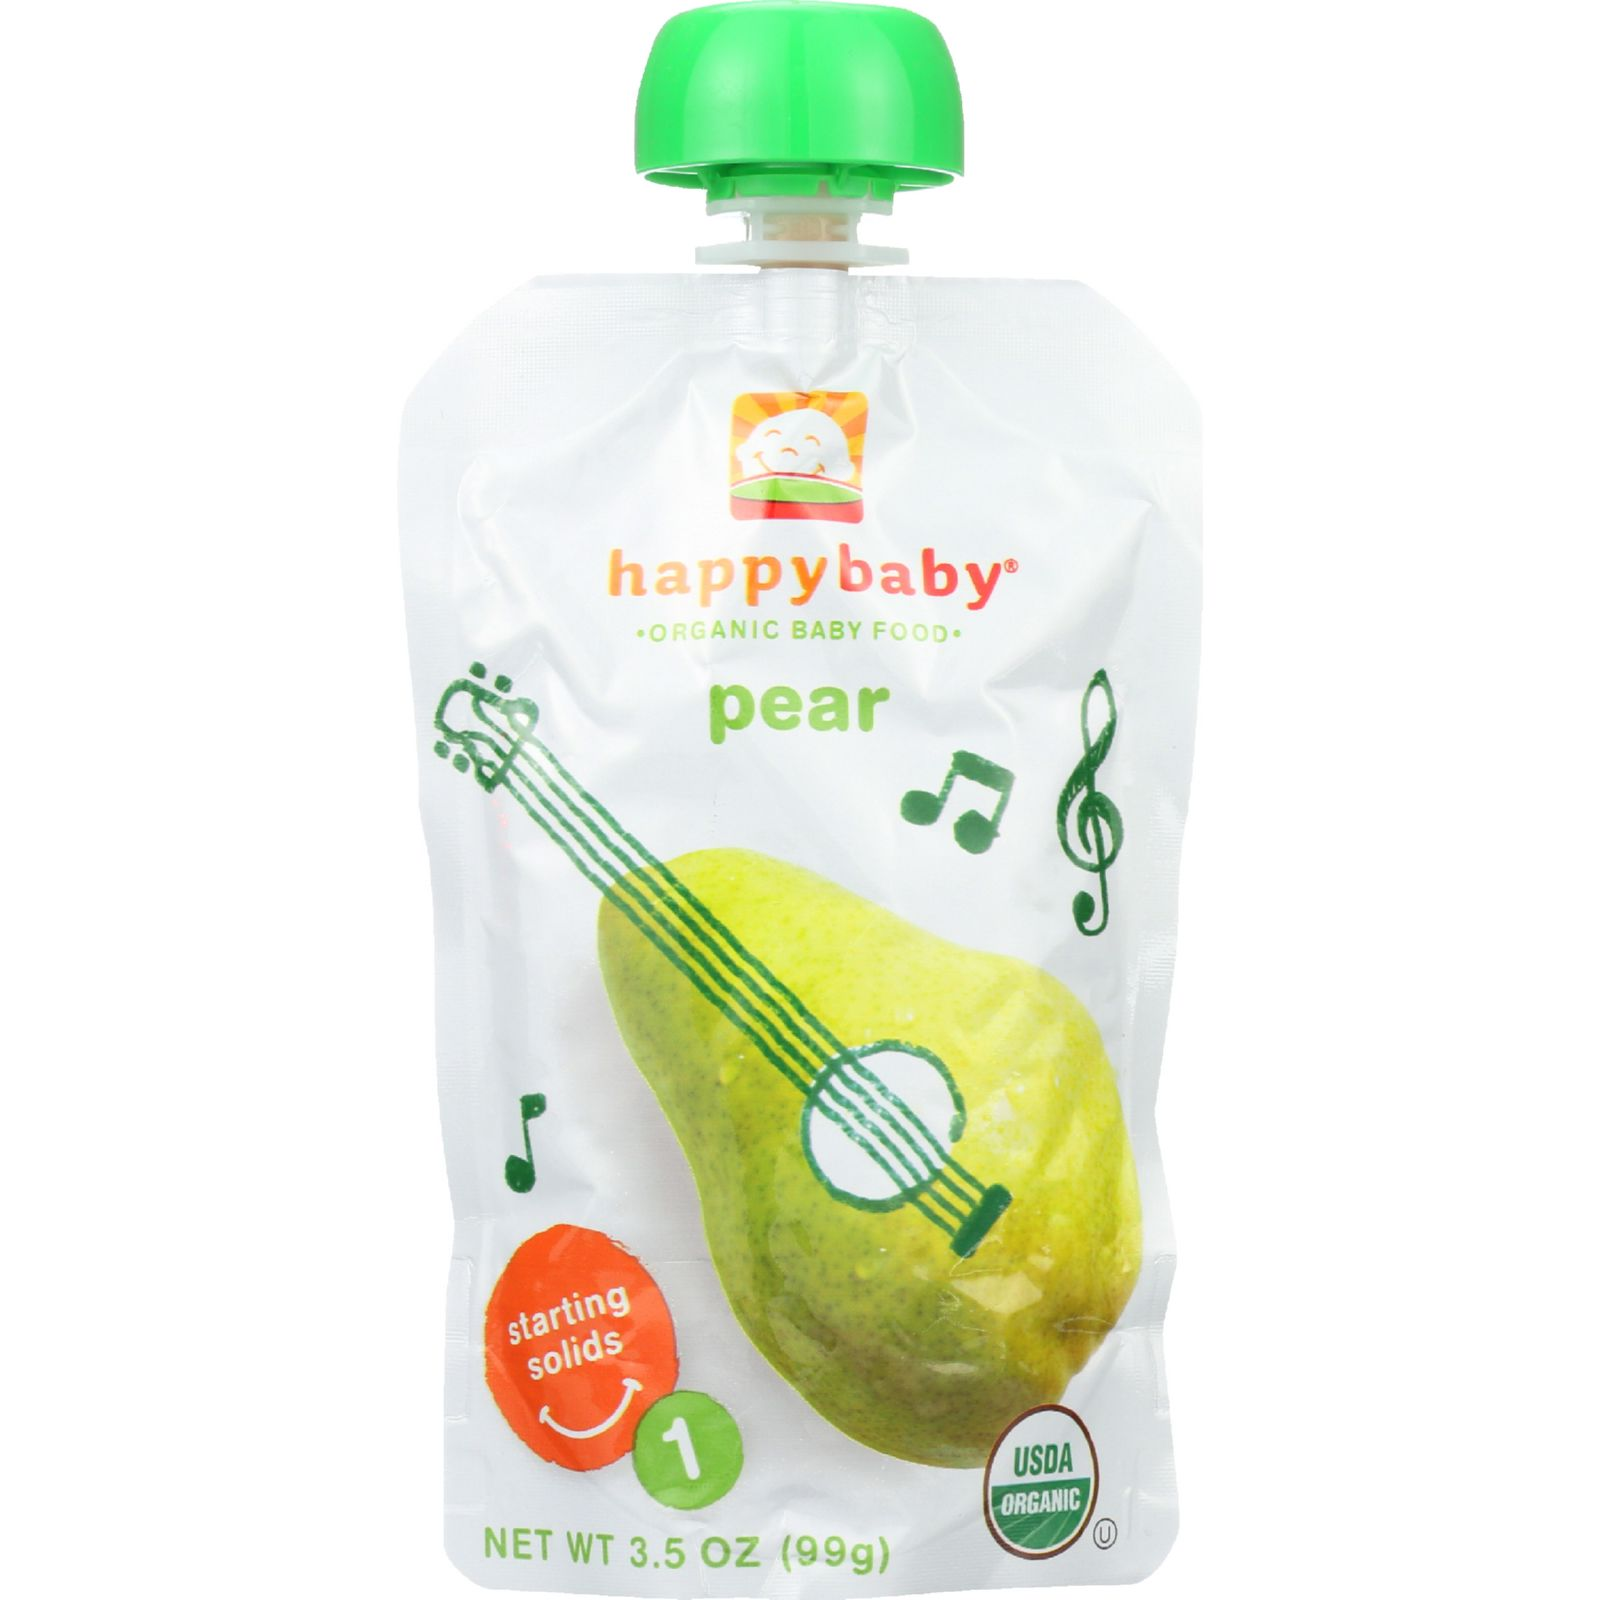 Happy Baby Baby Food - Organic - Starting Solids - Stage 1 - Pears - 3.5 Oz - Case Of 16